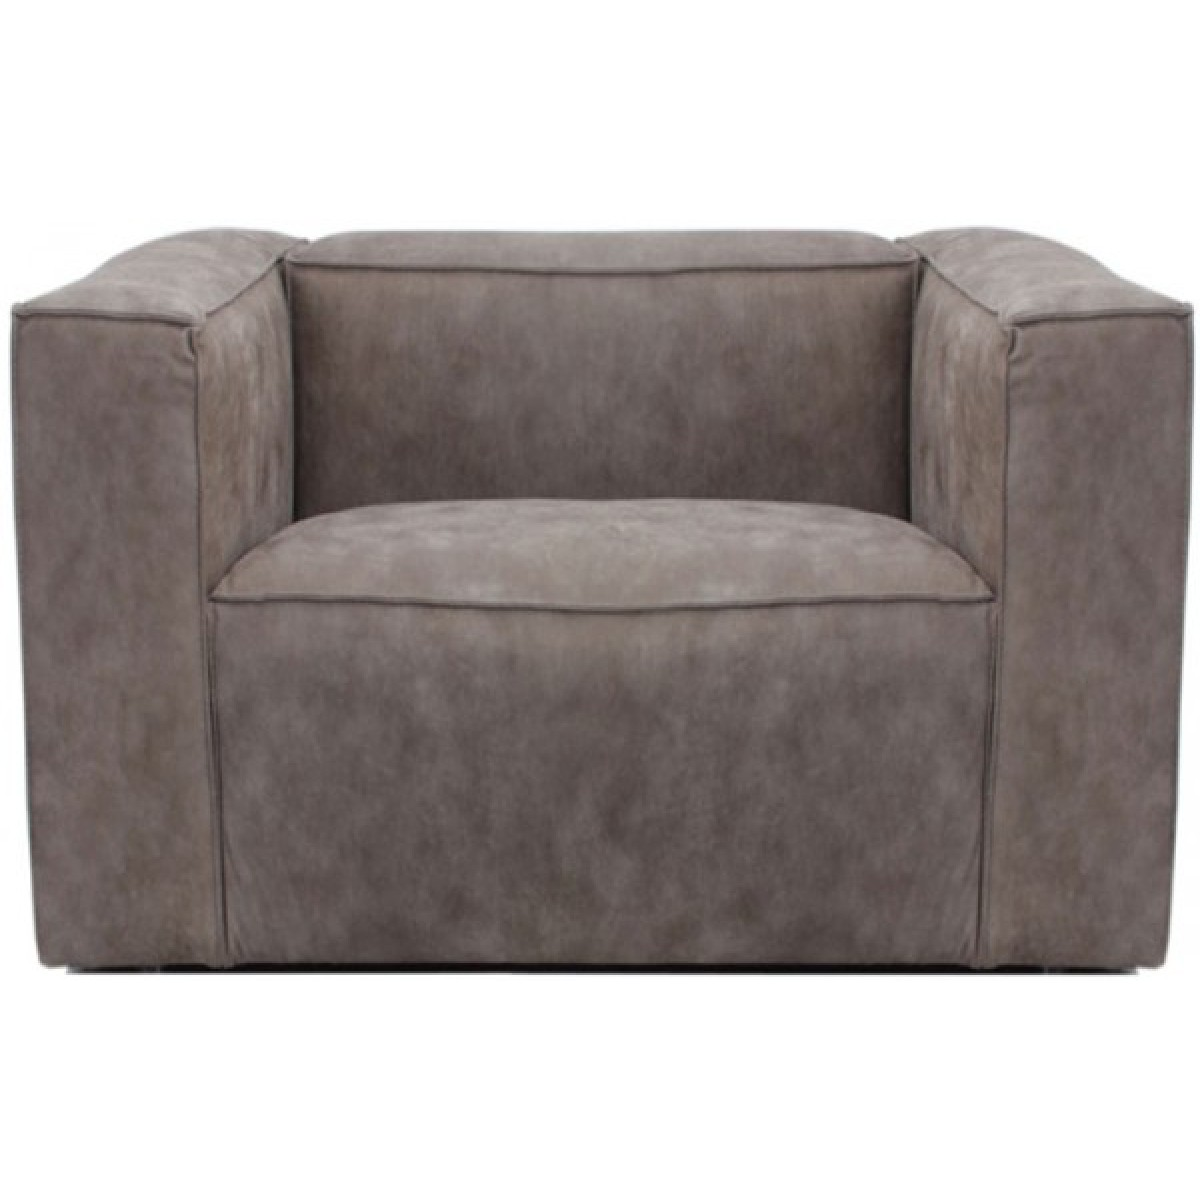 summer-fauteuil-loveseat-leer-anker-miltonhouse-sessel-sofa